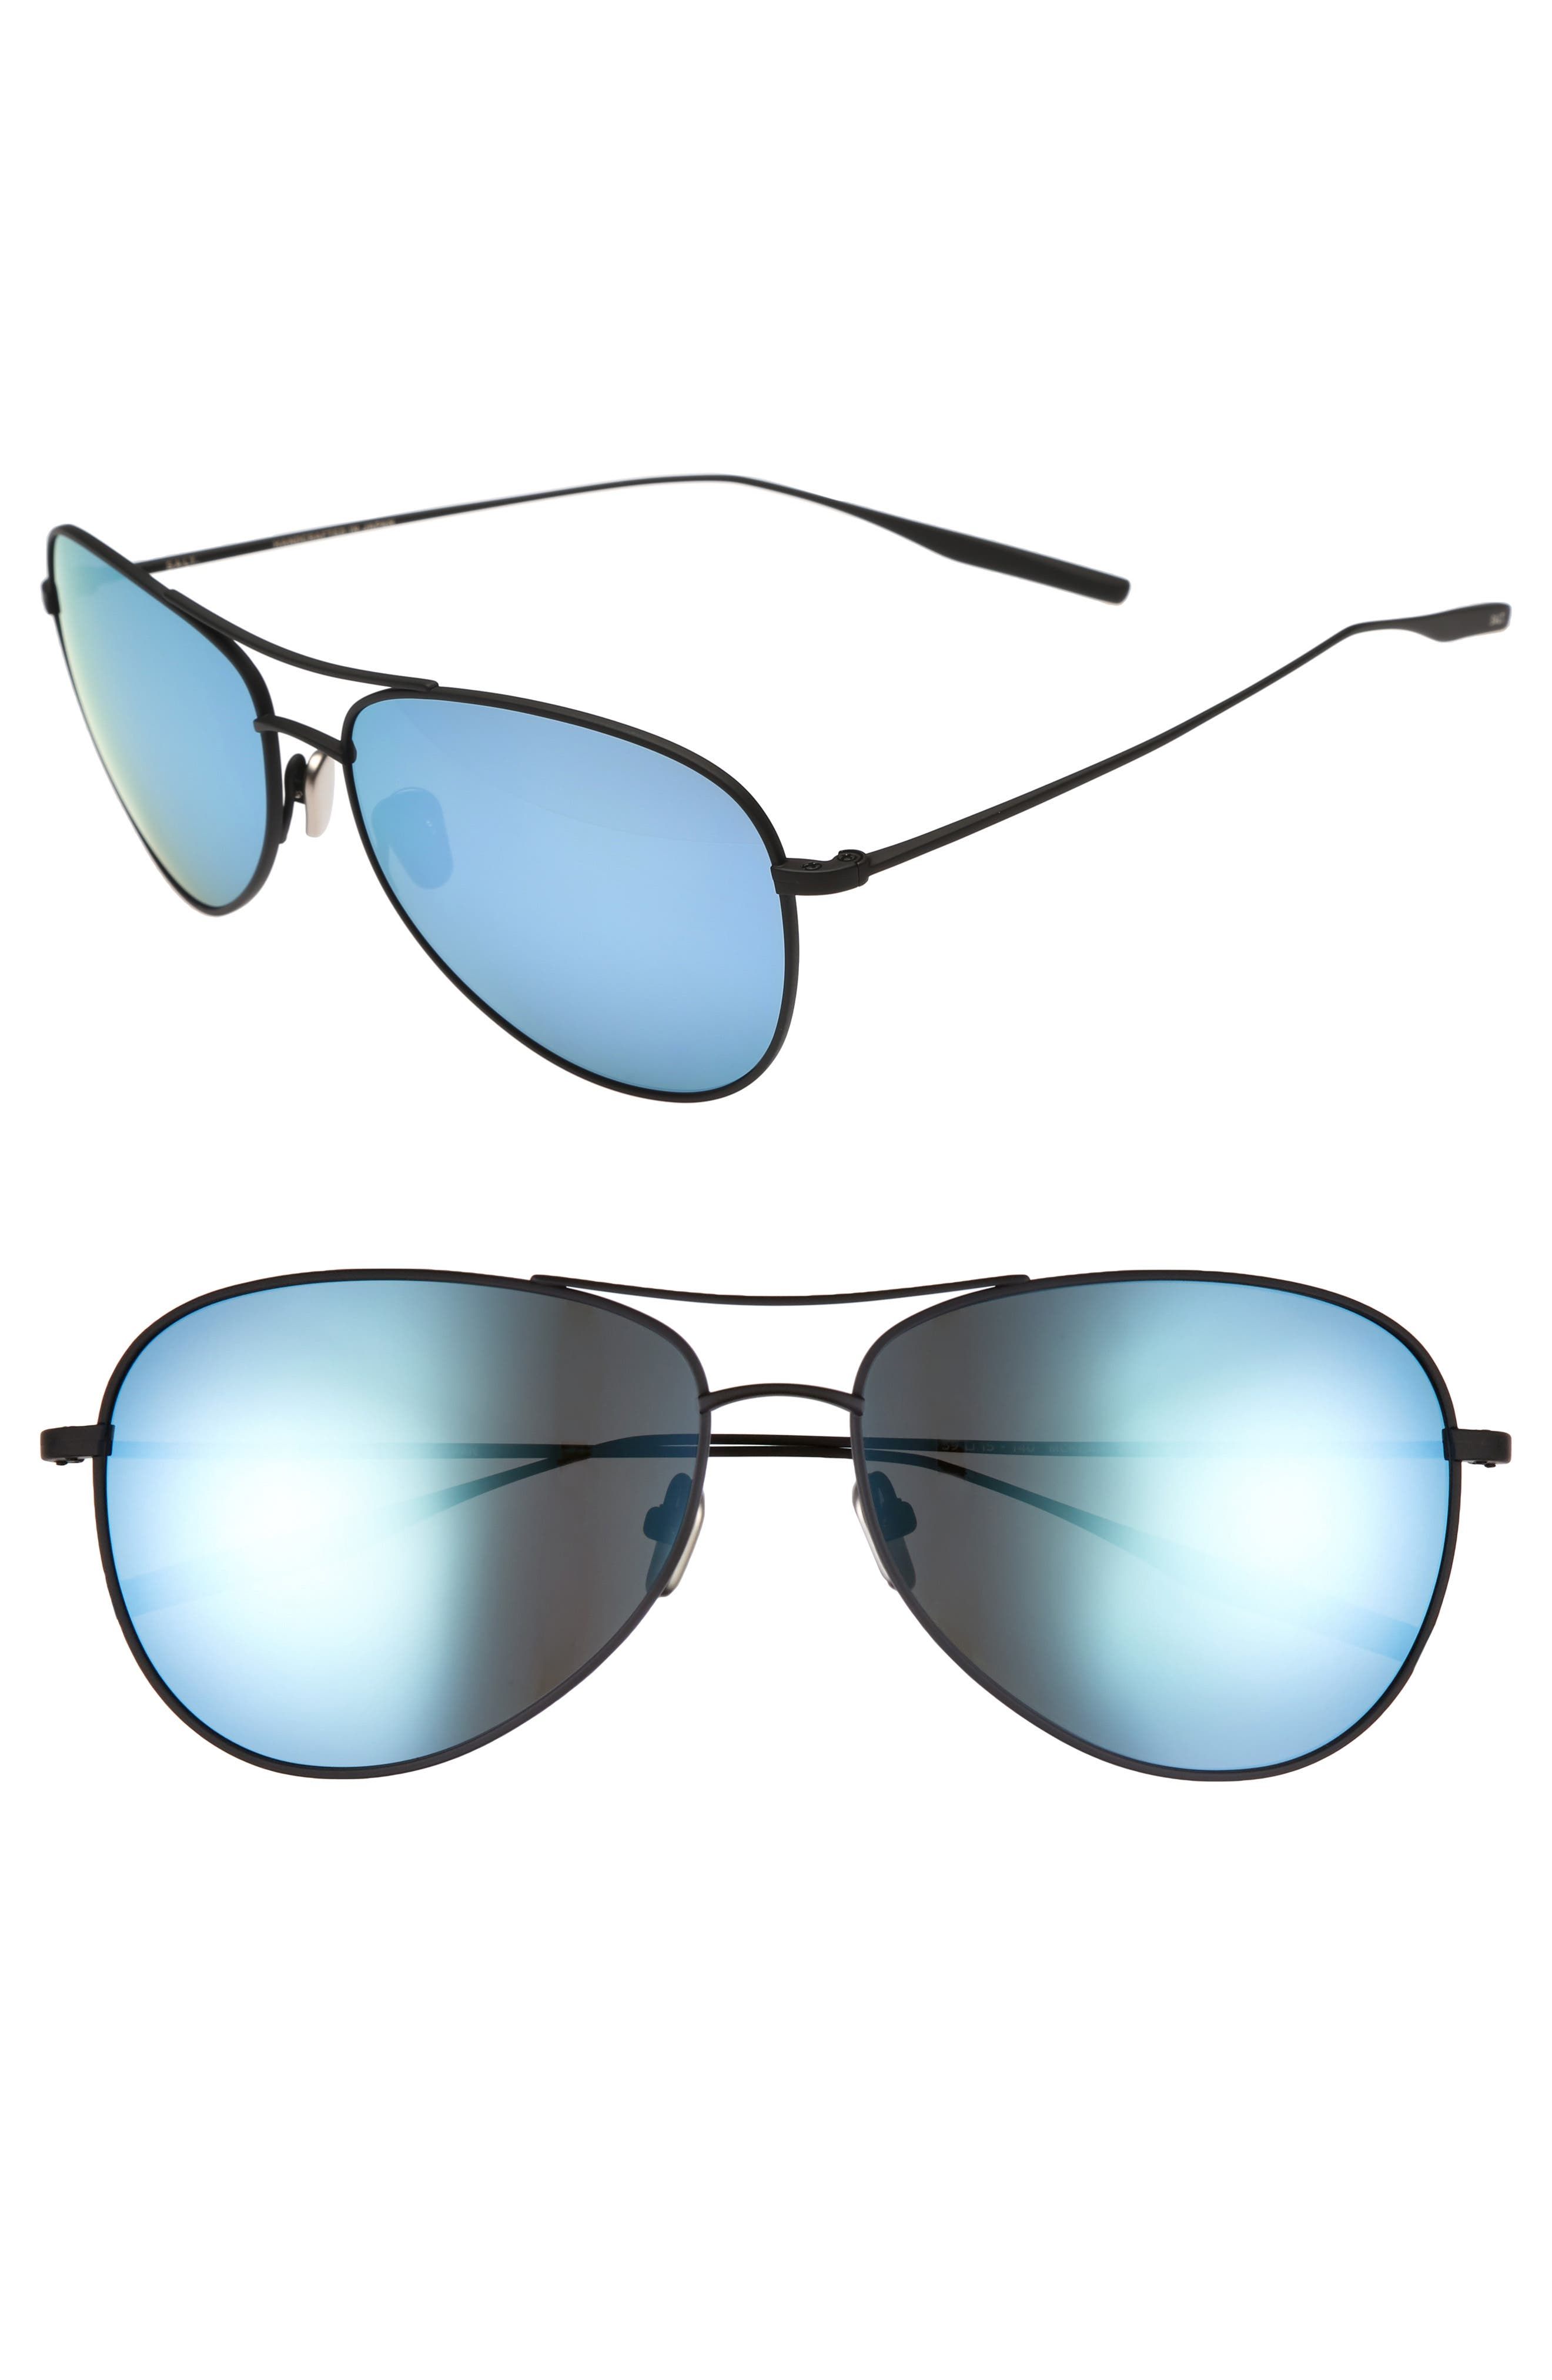 McKean 59mm Aviator Sunglasses,                         Main,                         color, BLACK SAND / MIRROR BLUE